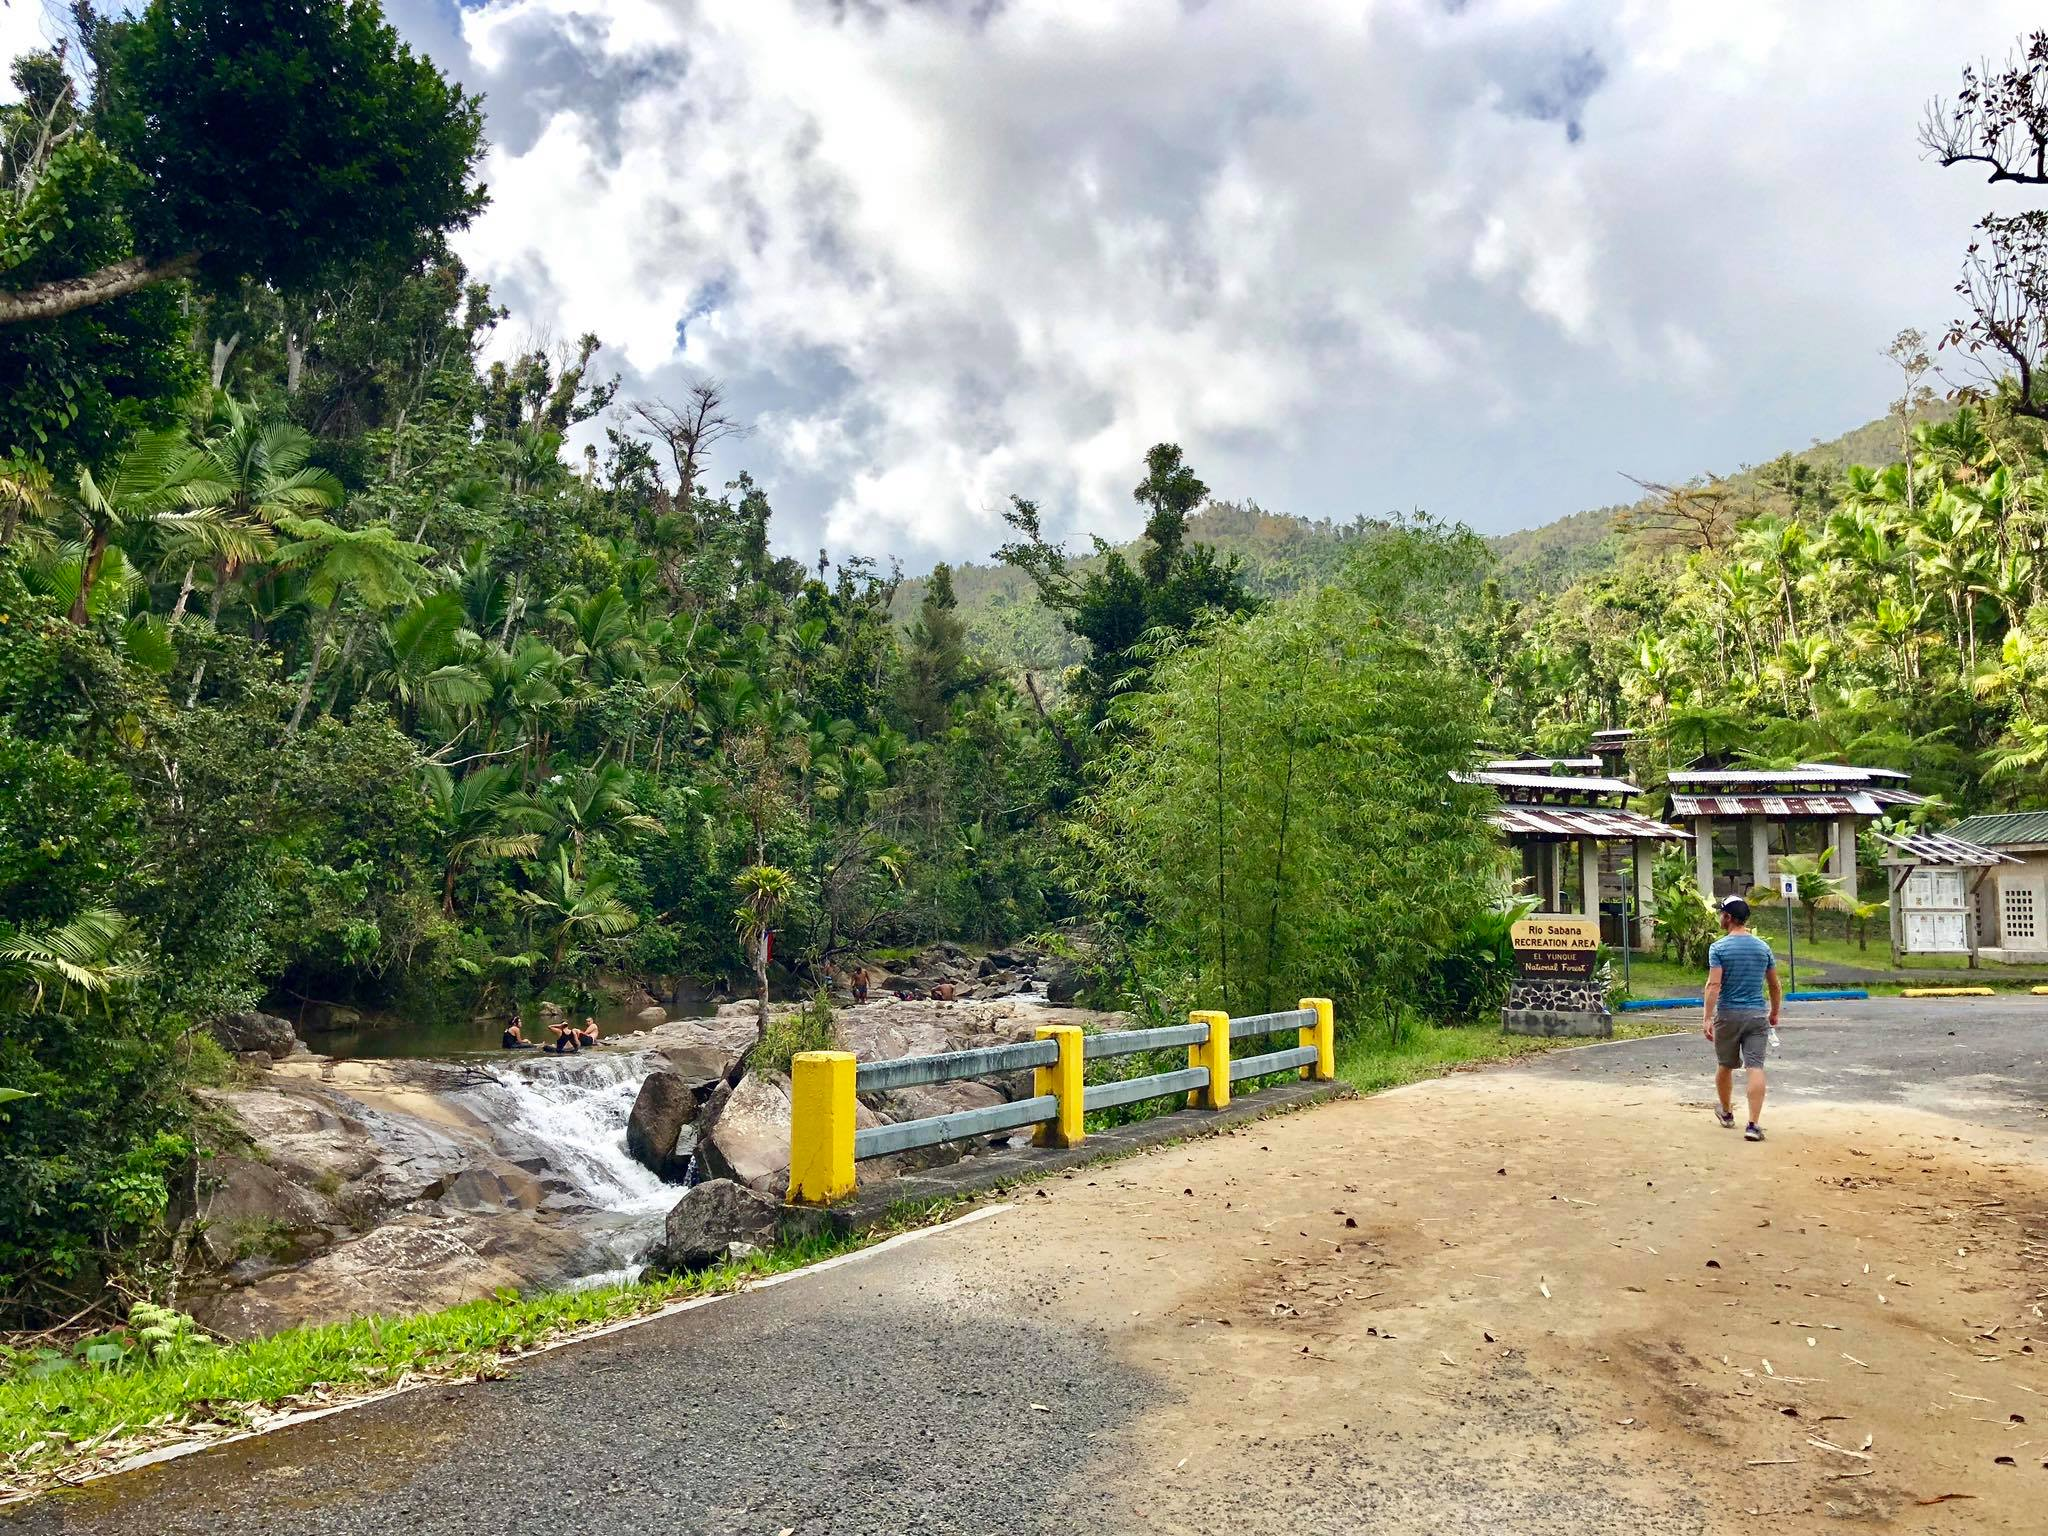 Life On The Road Day 10 Another day hiking in El Yunque National Forest and Eating BBQ at the malecon in Naguabo Promenade5.jpg